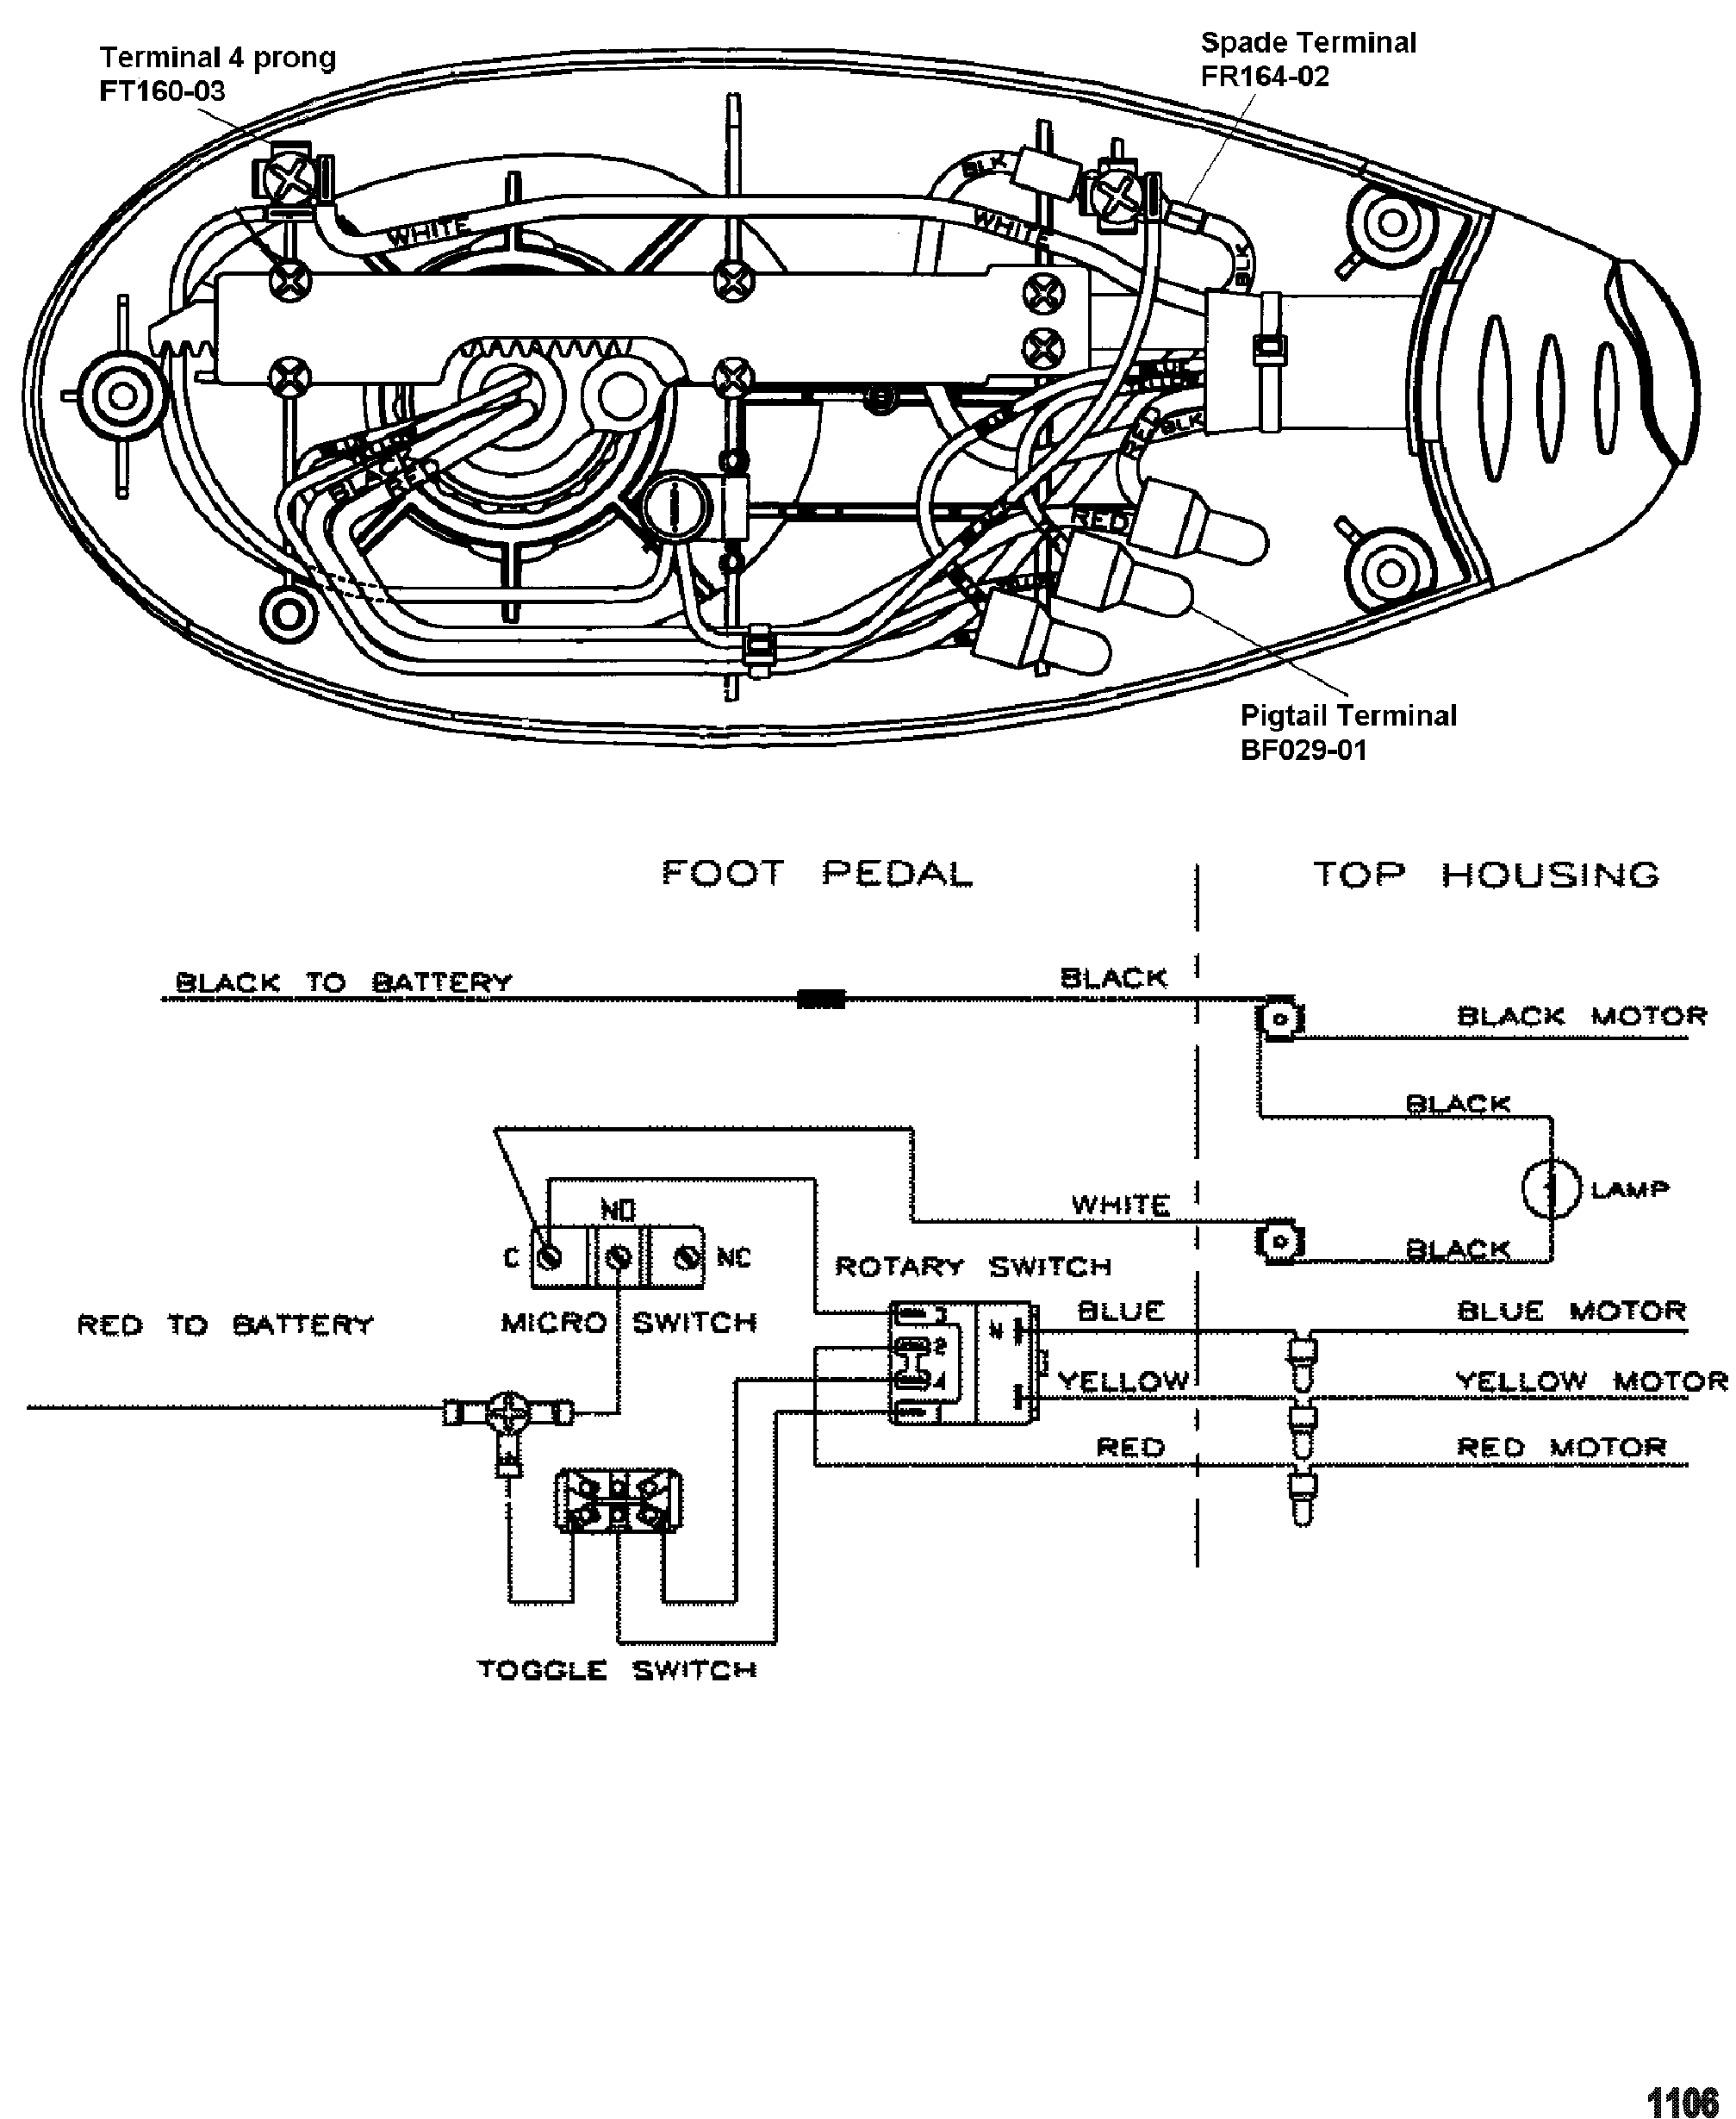 1106 diagrams 600338 motorguide trolling motor wiring diagram motorguide brute 767 wiring diagram at readyjetset.co